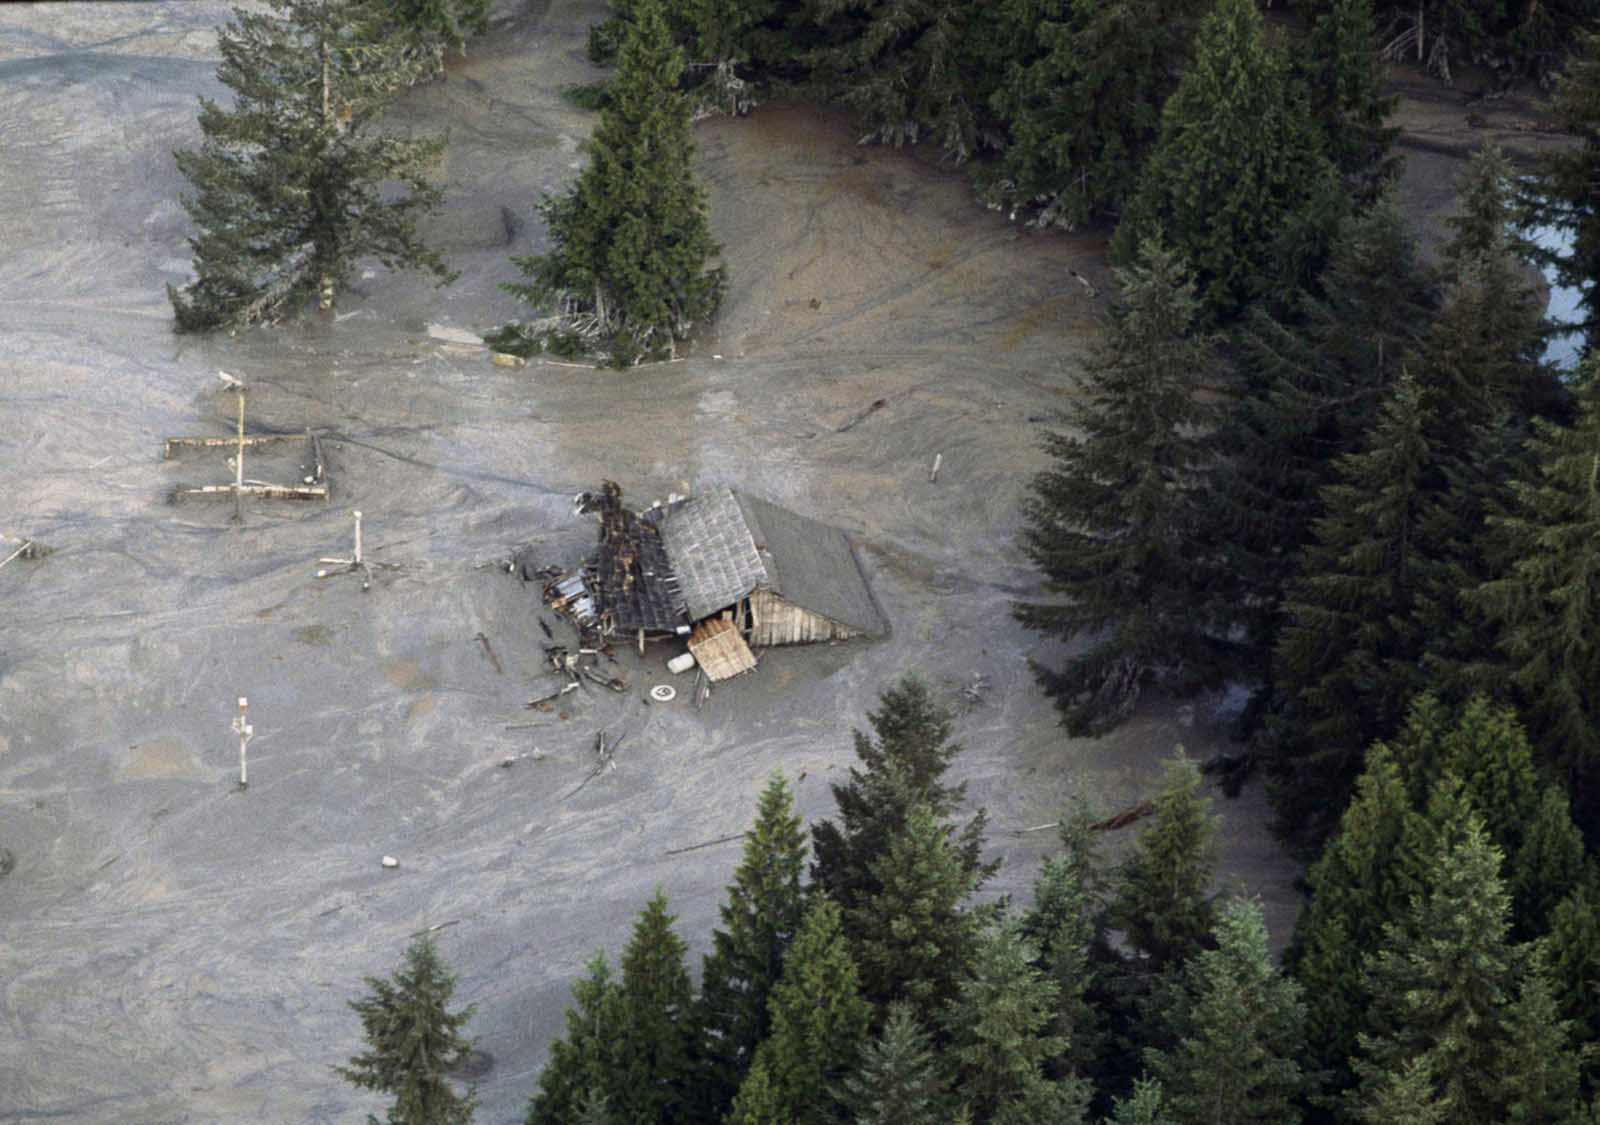 A house is submerged along the Toutle River which flooded in the aftermath of the eruption of Mount St. Helens on May 19, 1980. Area streams and rivers rose quickly as ice and snow on the volcano melted instantly.